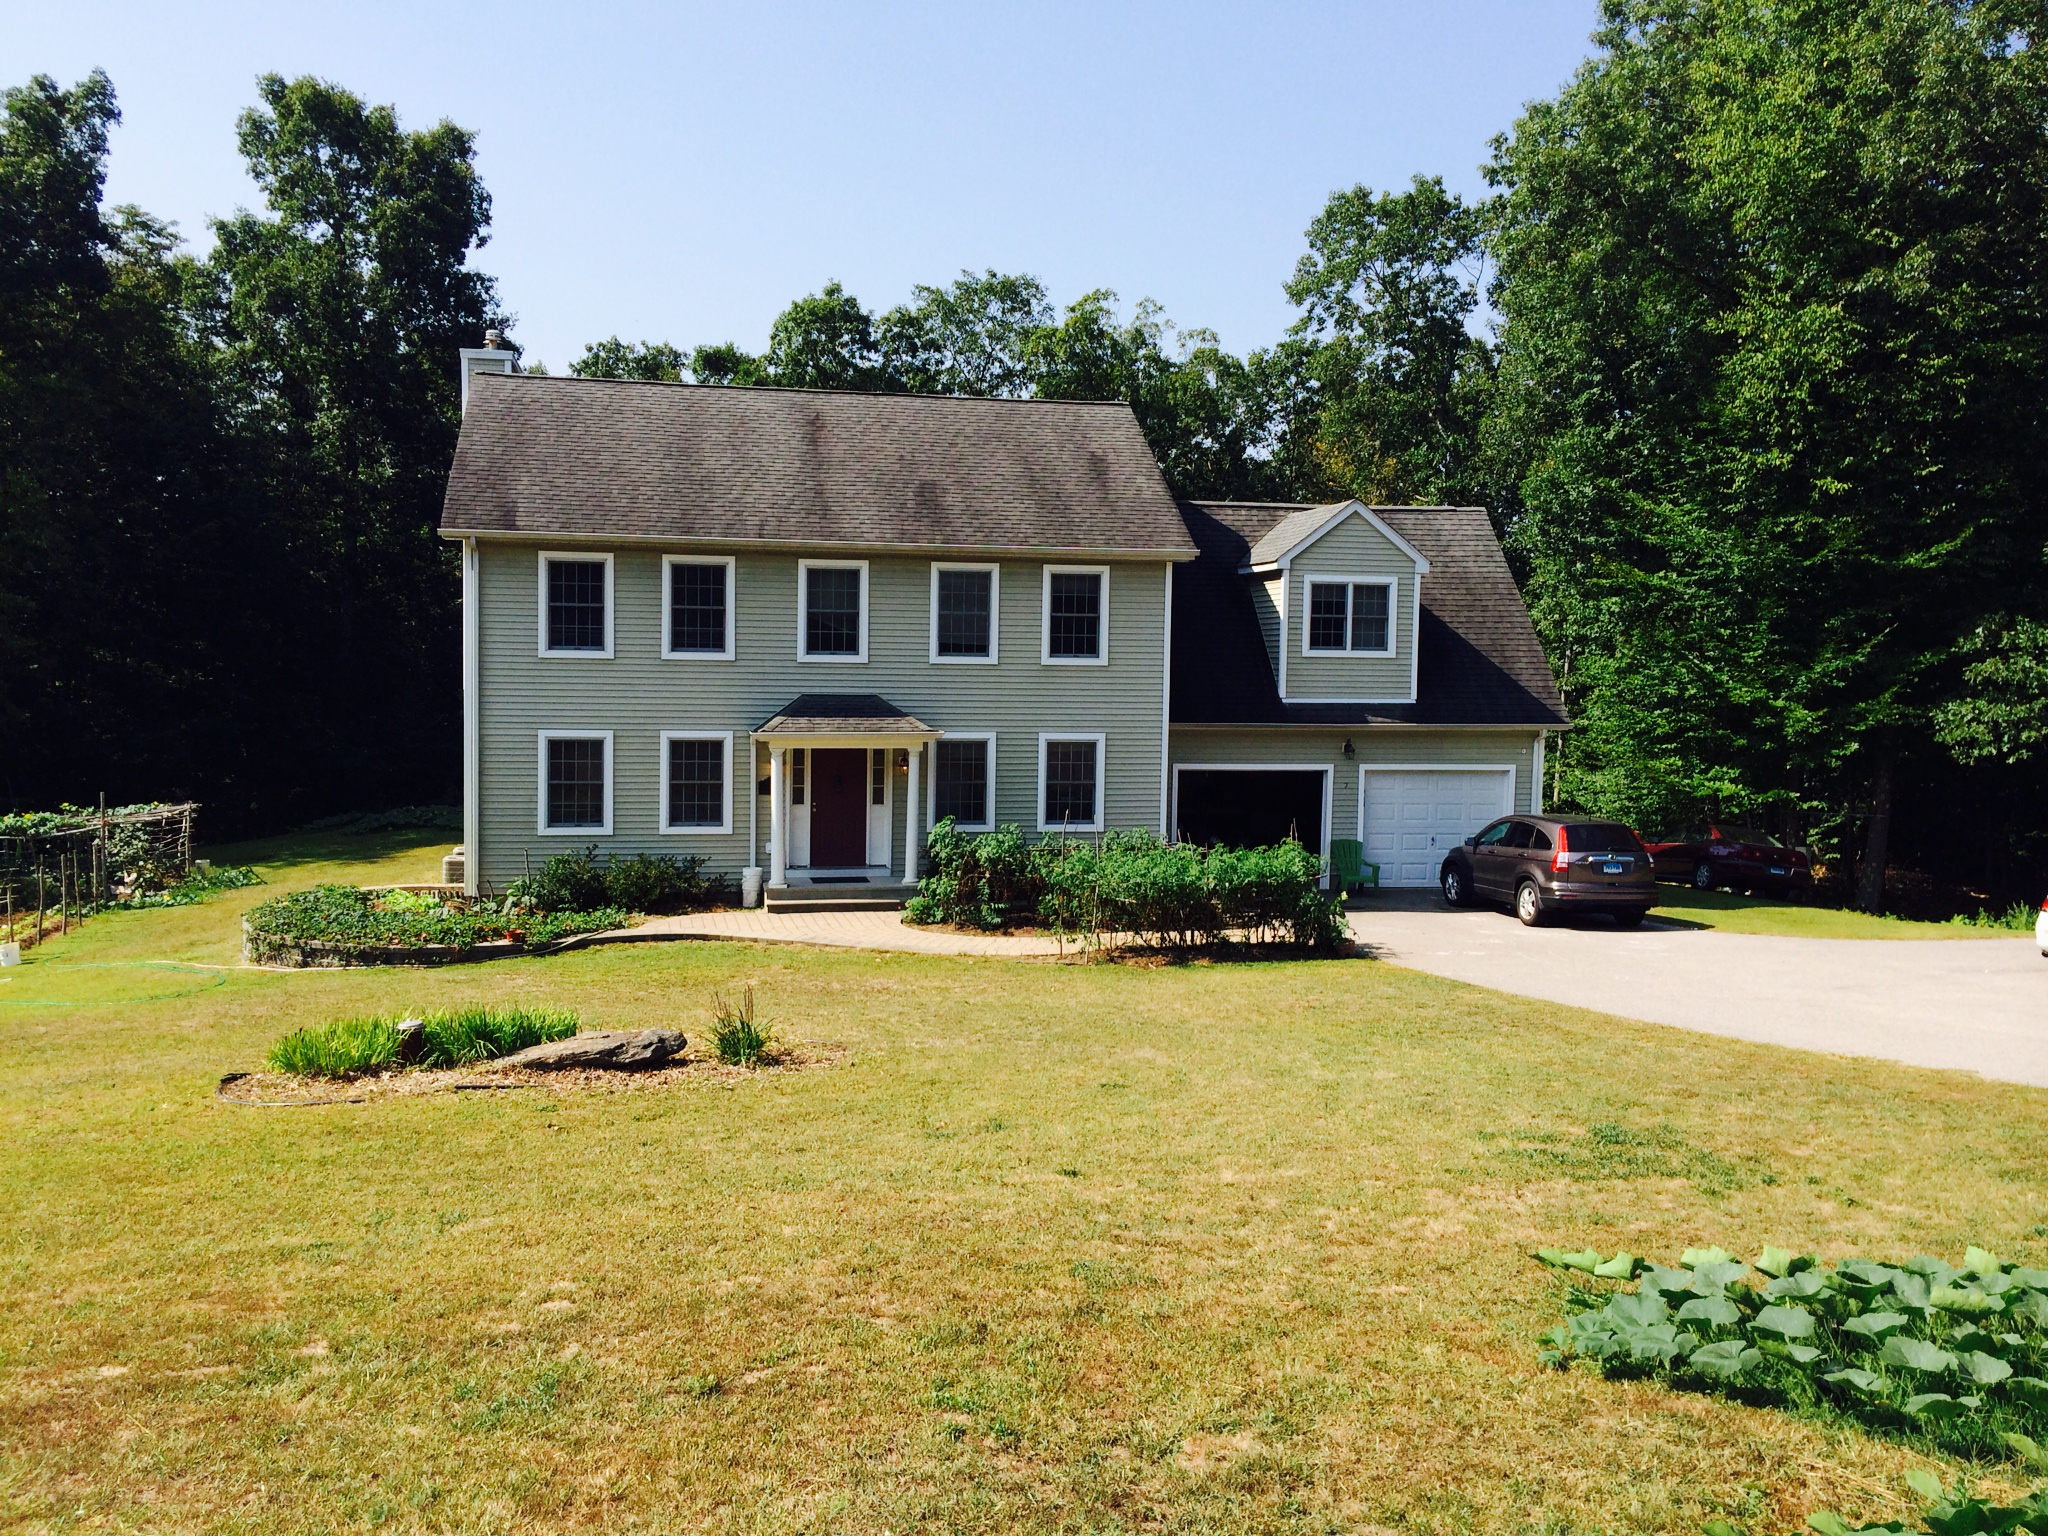 7 Southwinds Rd., East Haddam, Connecticut 06469